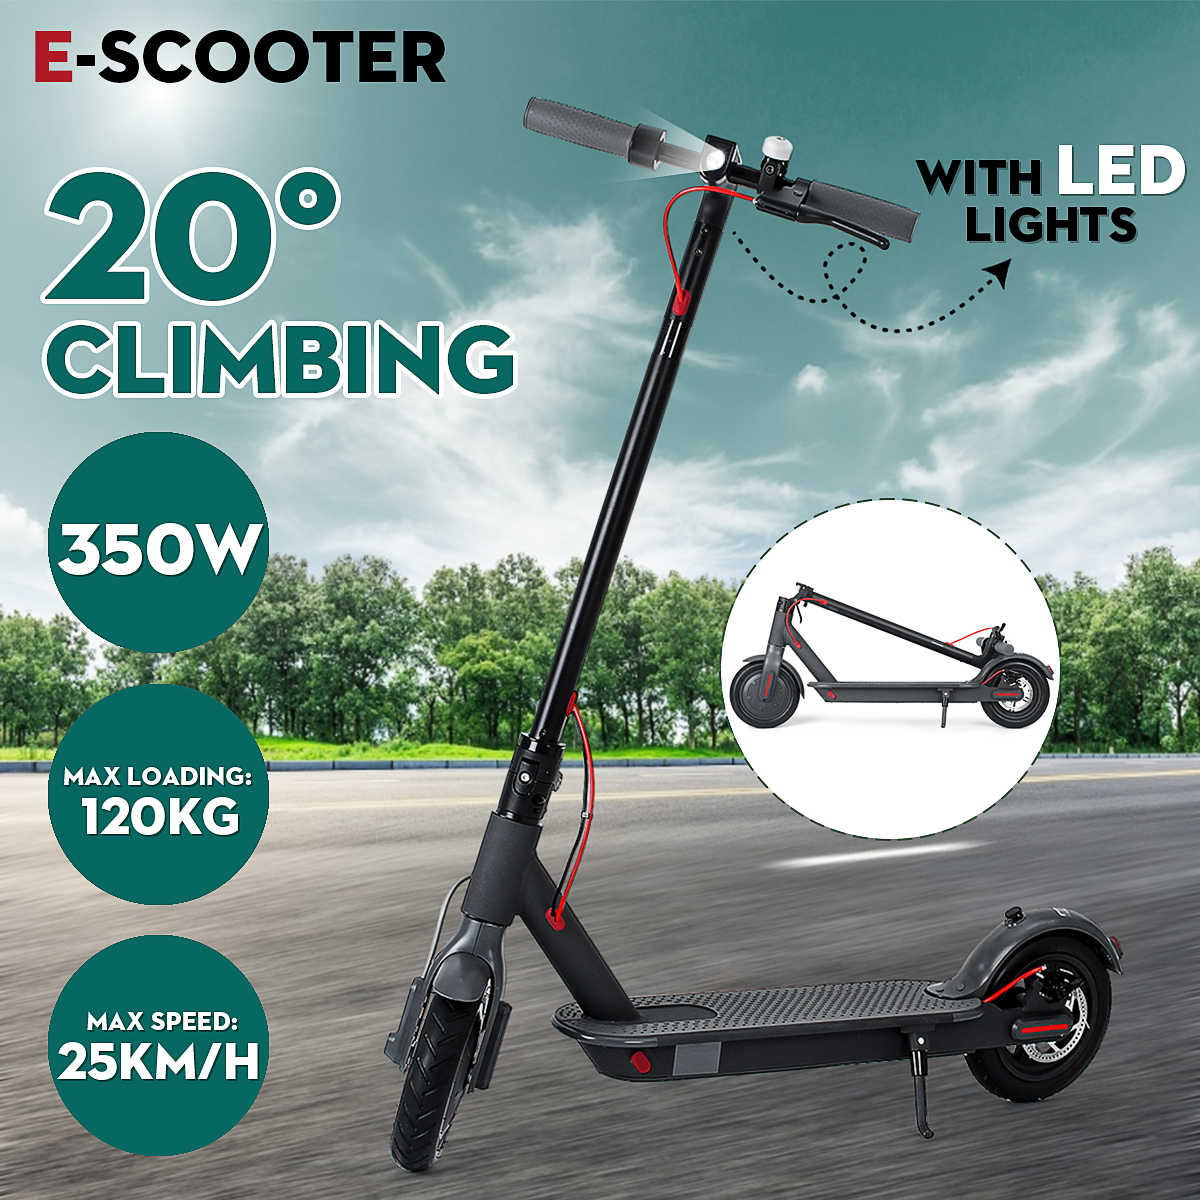 Adult Electric Scooter 100-240V 350W Foldable And Portable Black Accessories Electric Scooters With Two Wheels 111.5x23.5x31cm